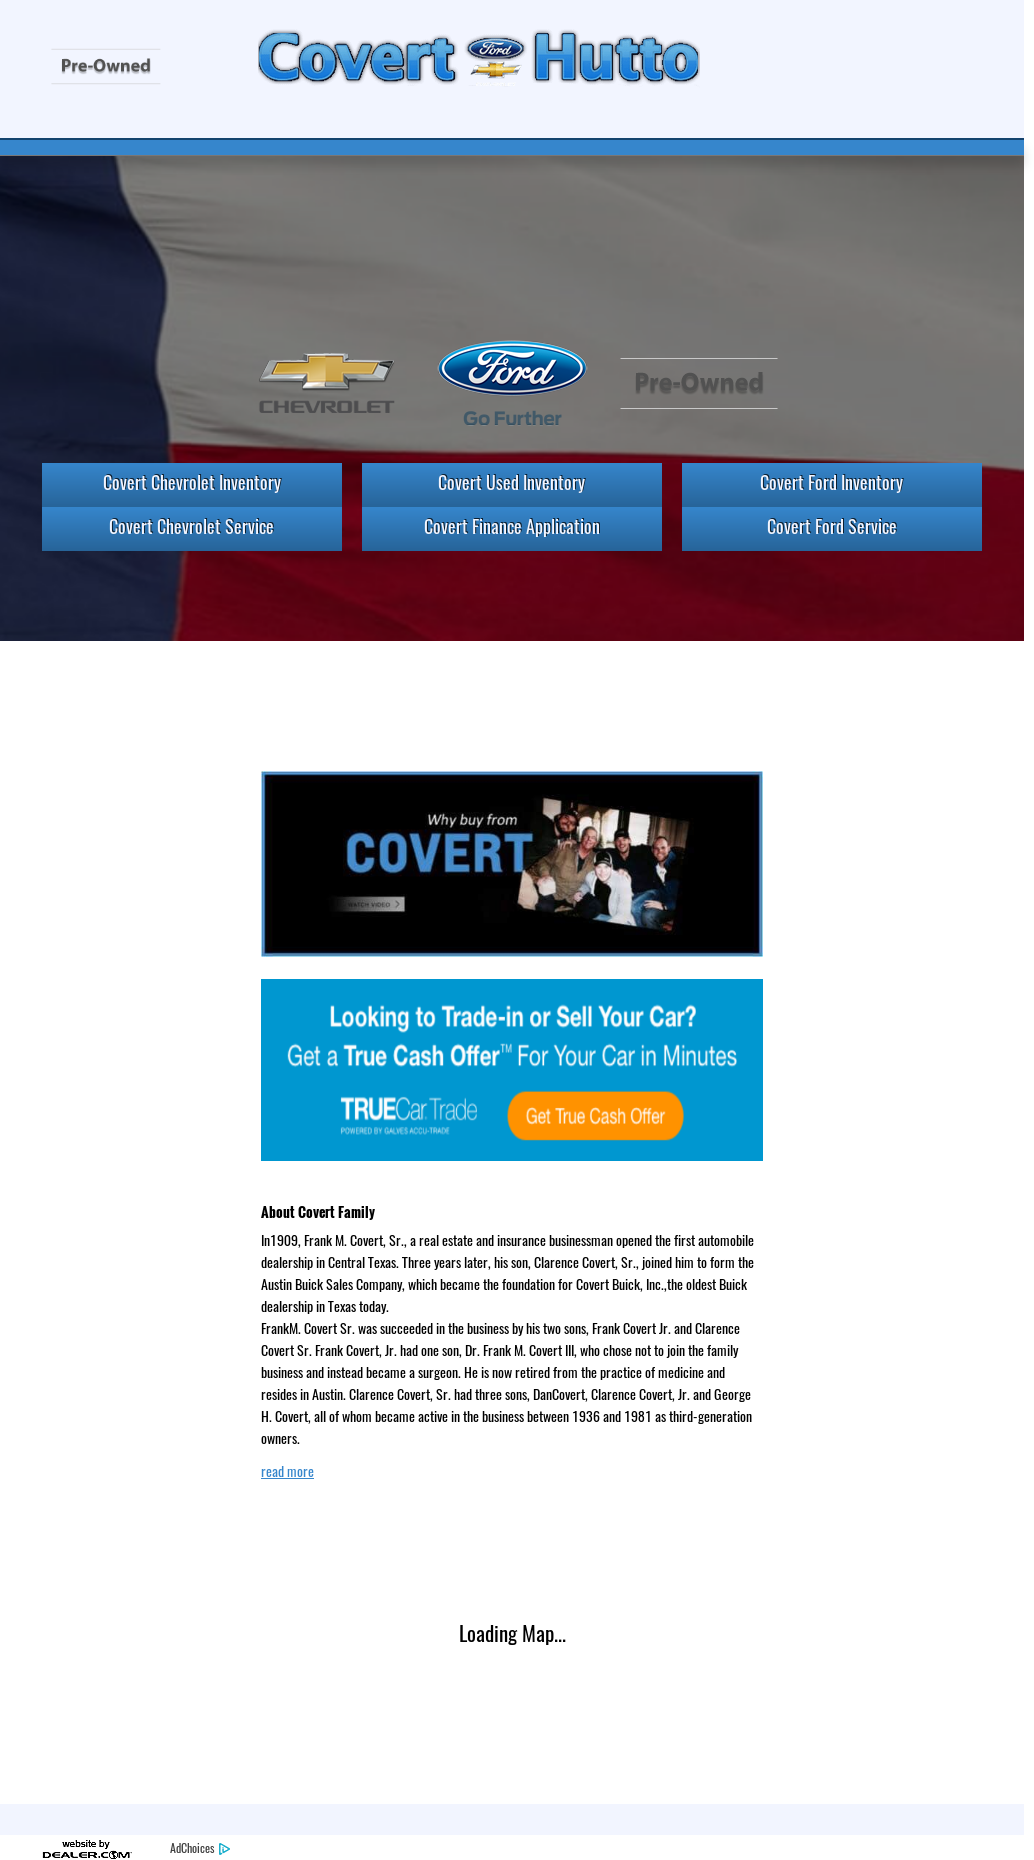 Covert ford chevrolet website history